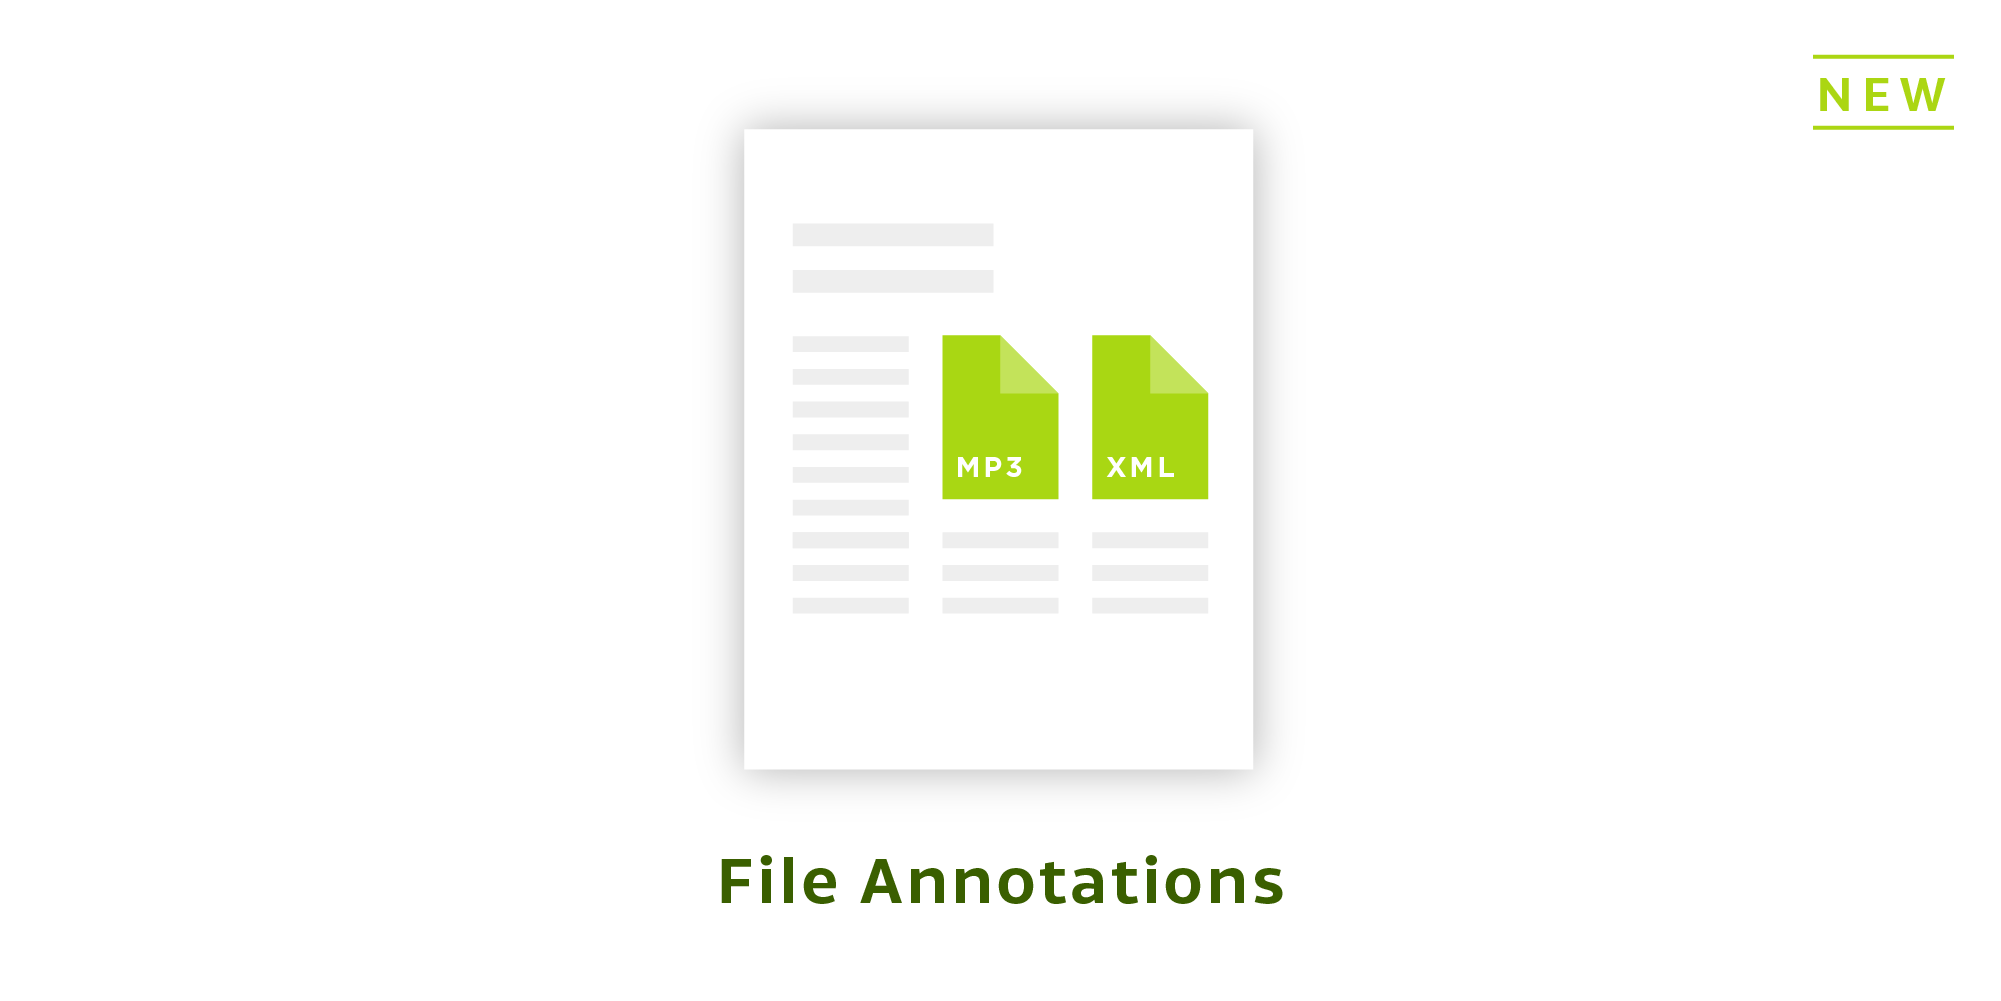 File Annotations